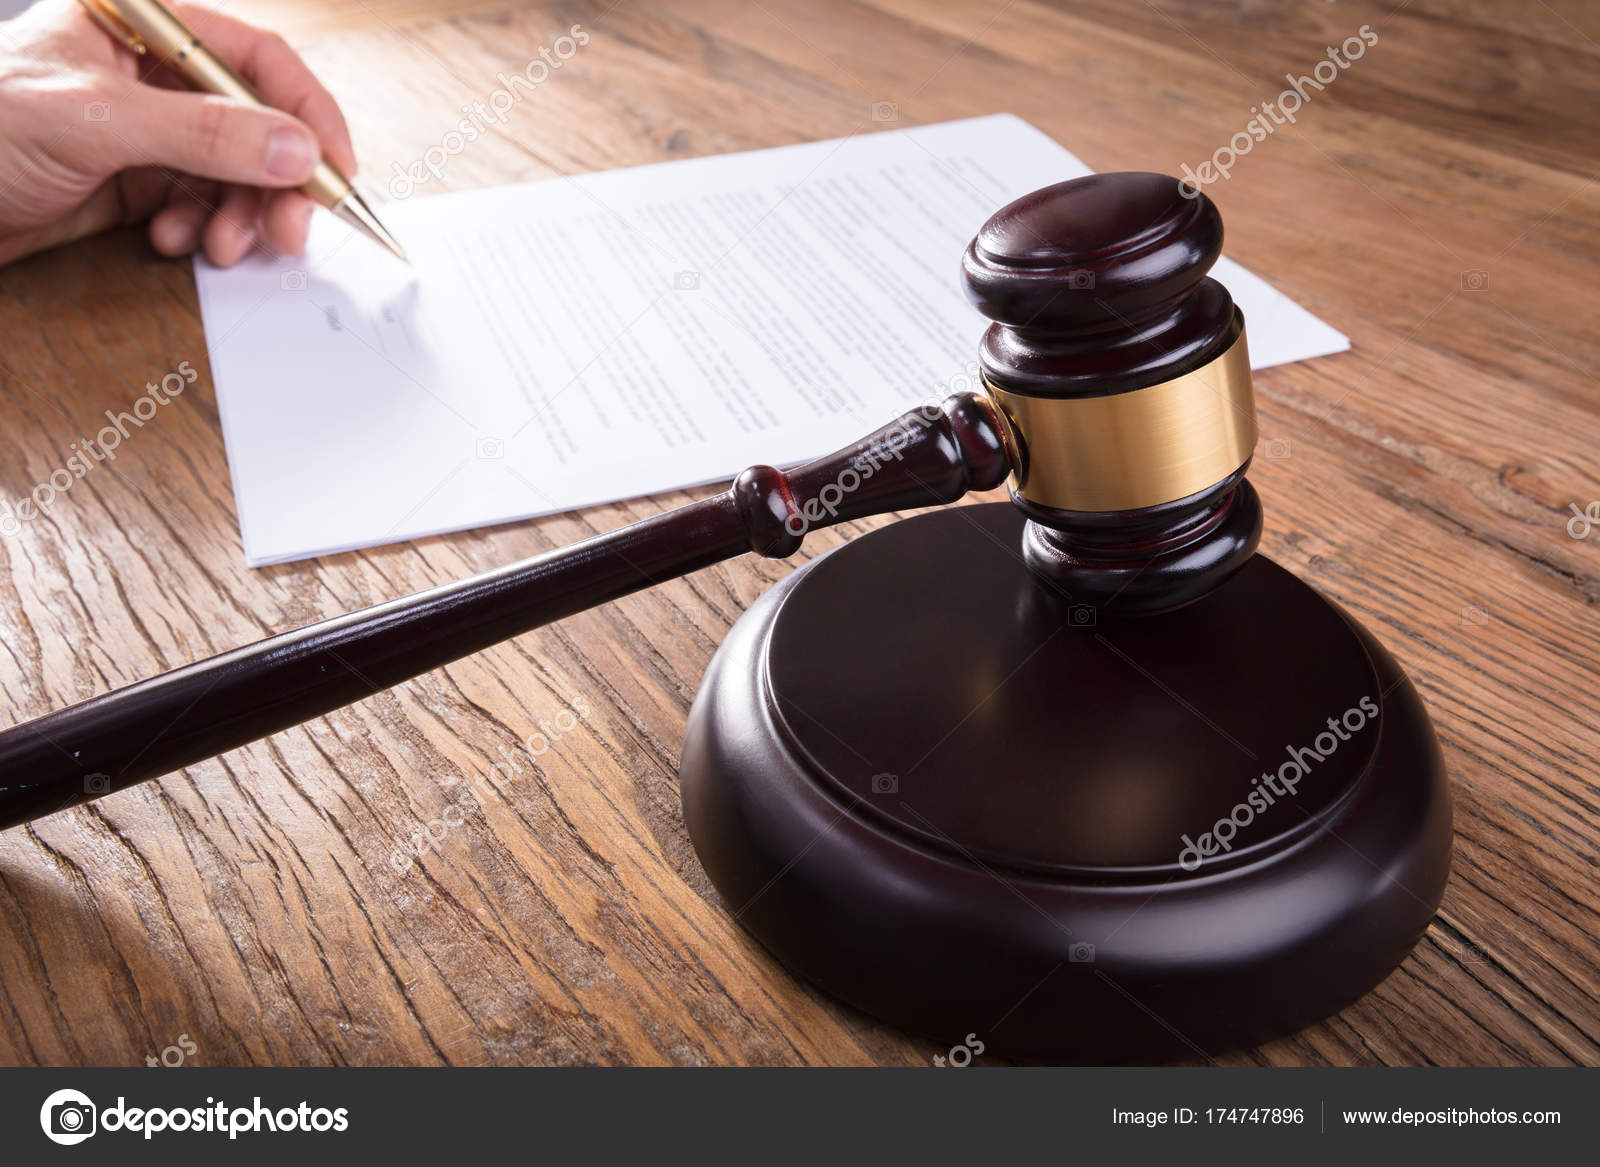 Person Signing Legal Document Stock Photo AndreyPopov - Signing legal documents